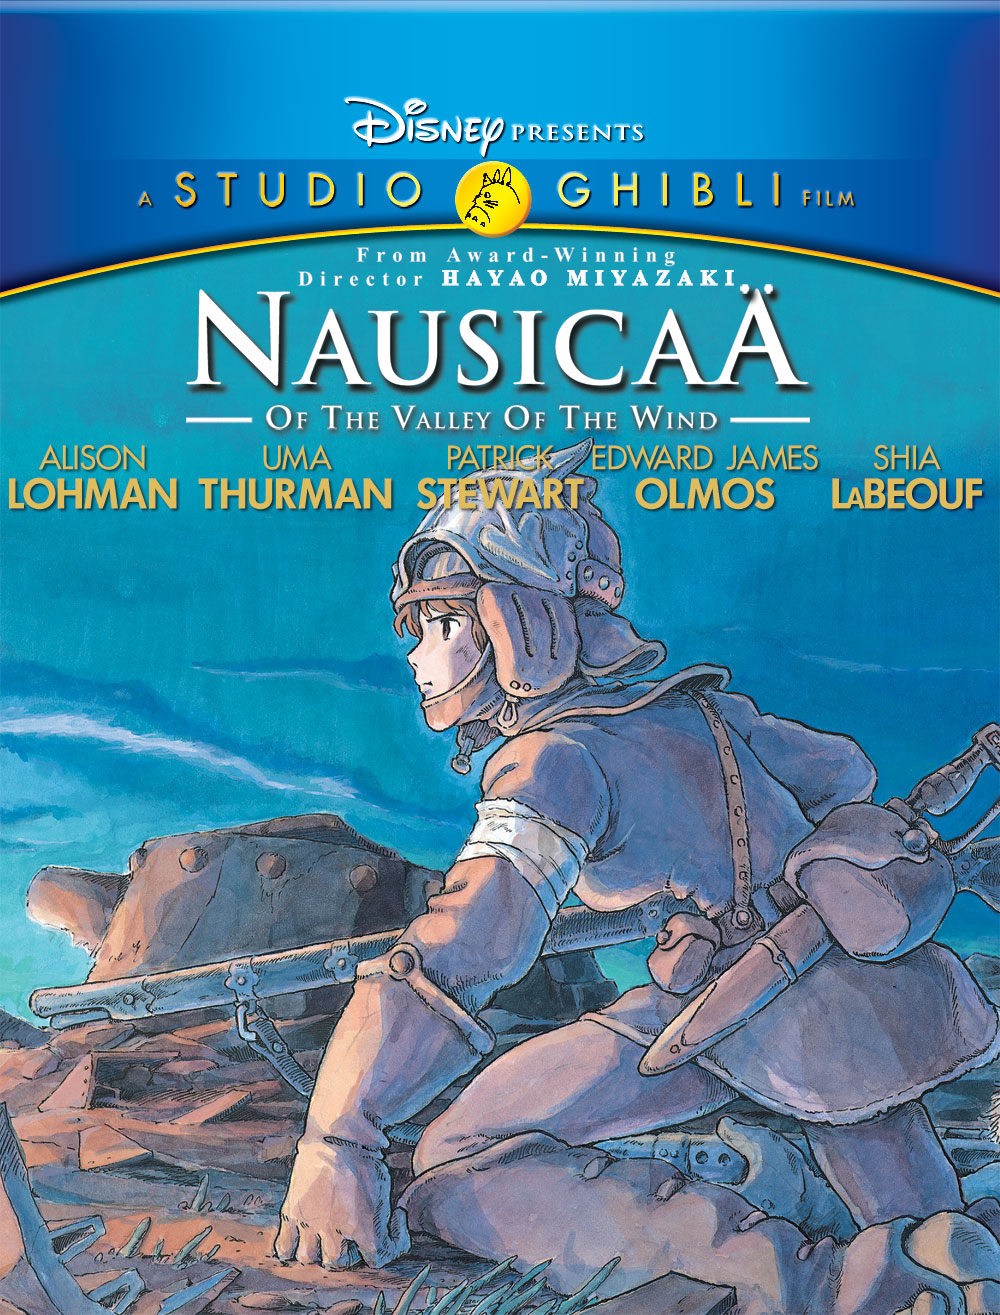 HD0598 - Nausicaa Of The Valley Of The Wind - Công Chúa Của Thung Lũng Gió